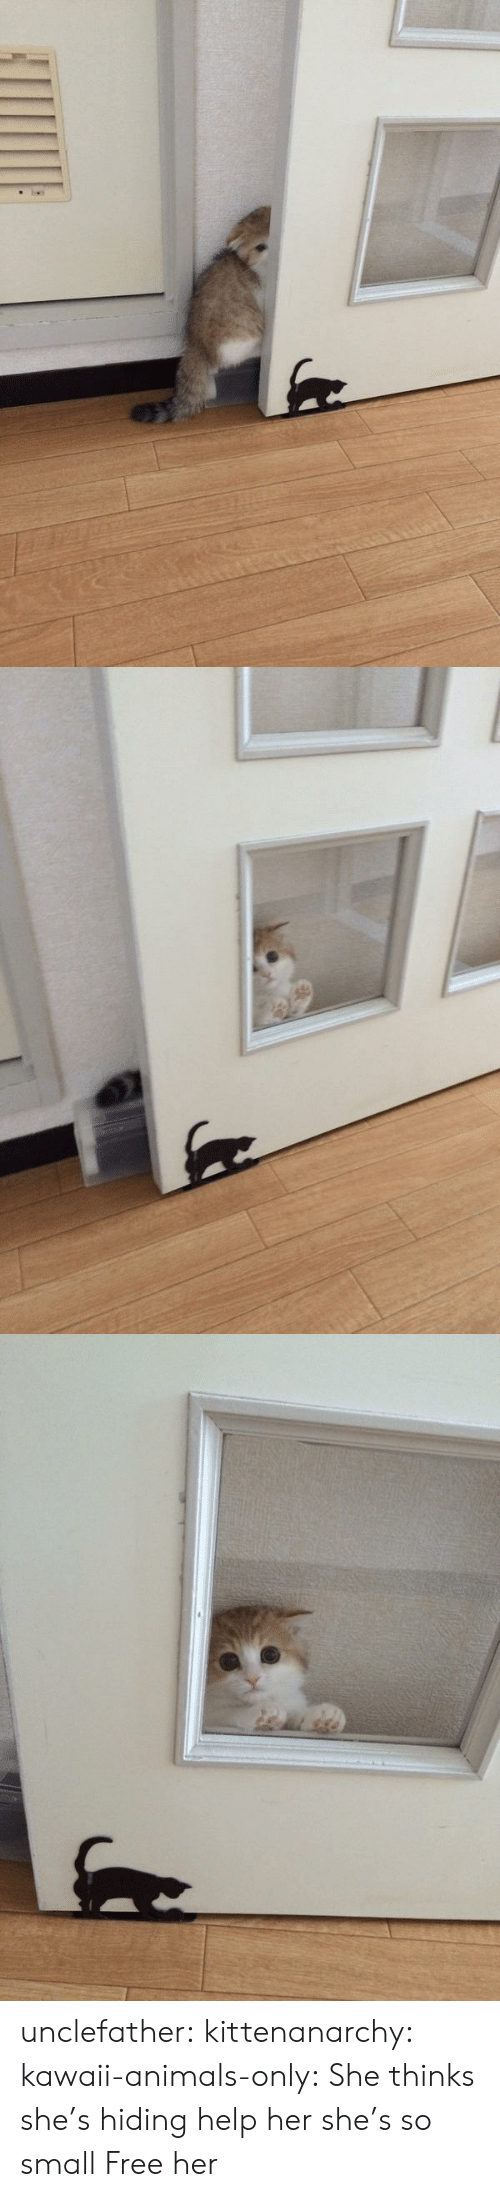 Free Her: unclefather:  kittenanarchy:  kawaii-animals-only:  She thinks she's hiding  help her she's so small   Free her